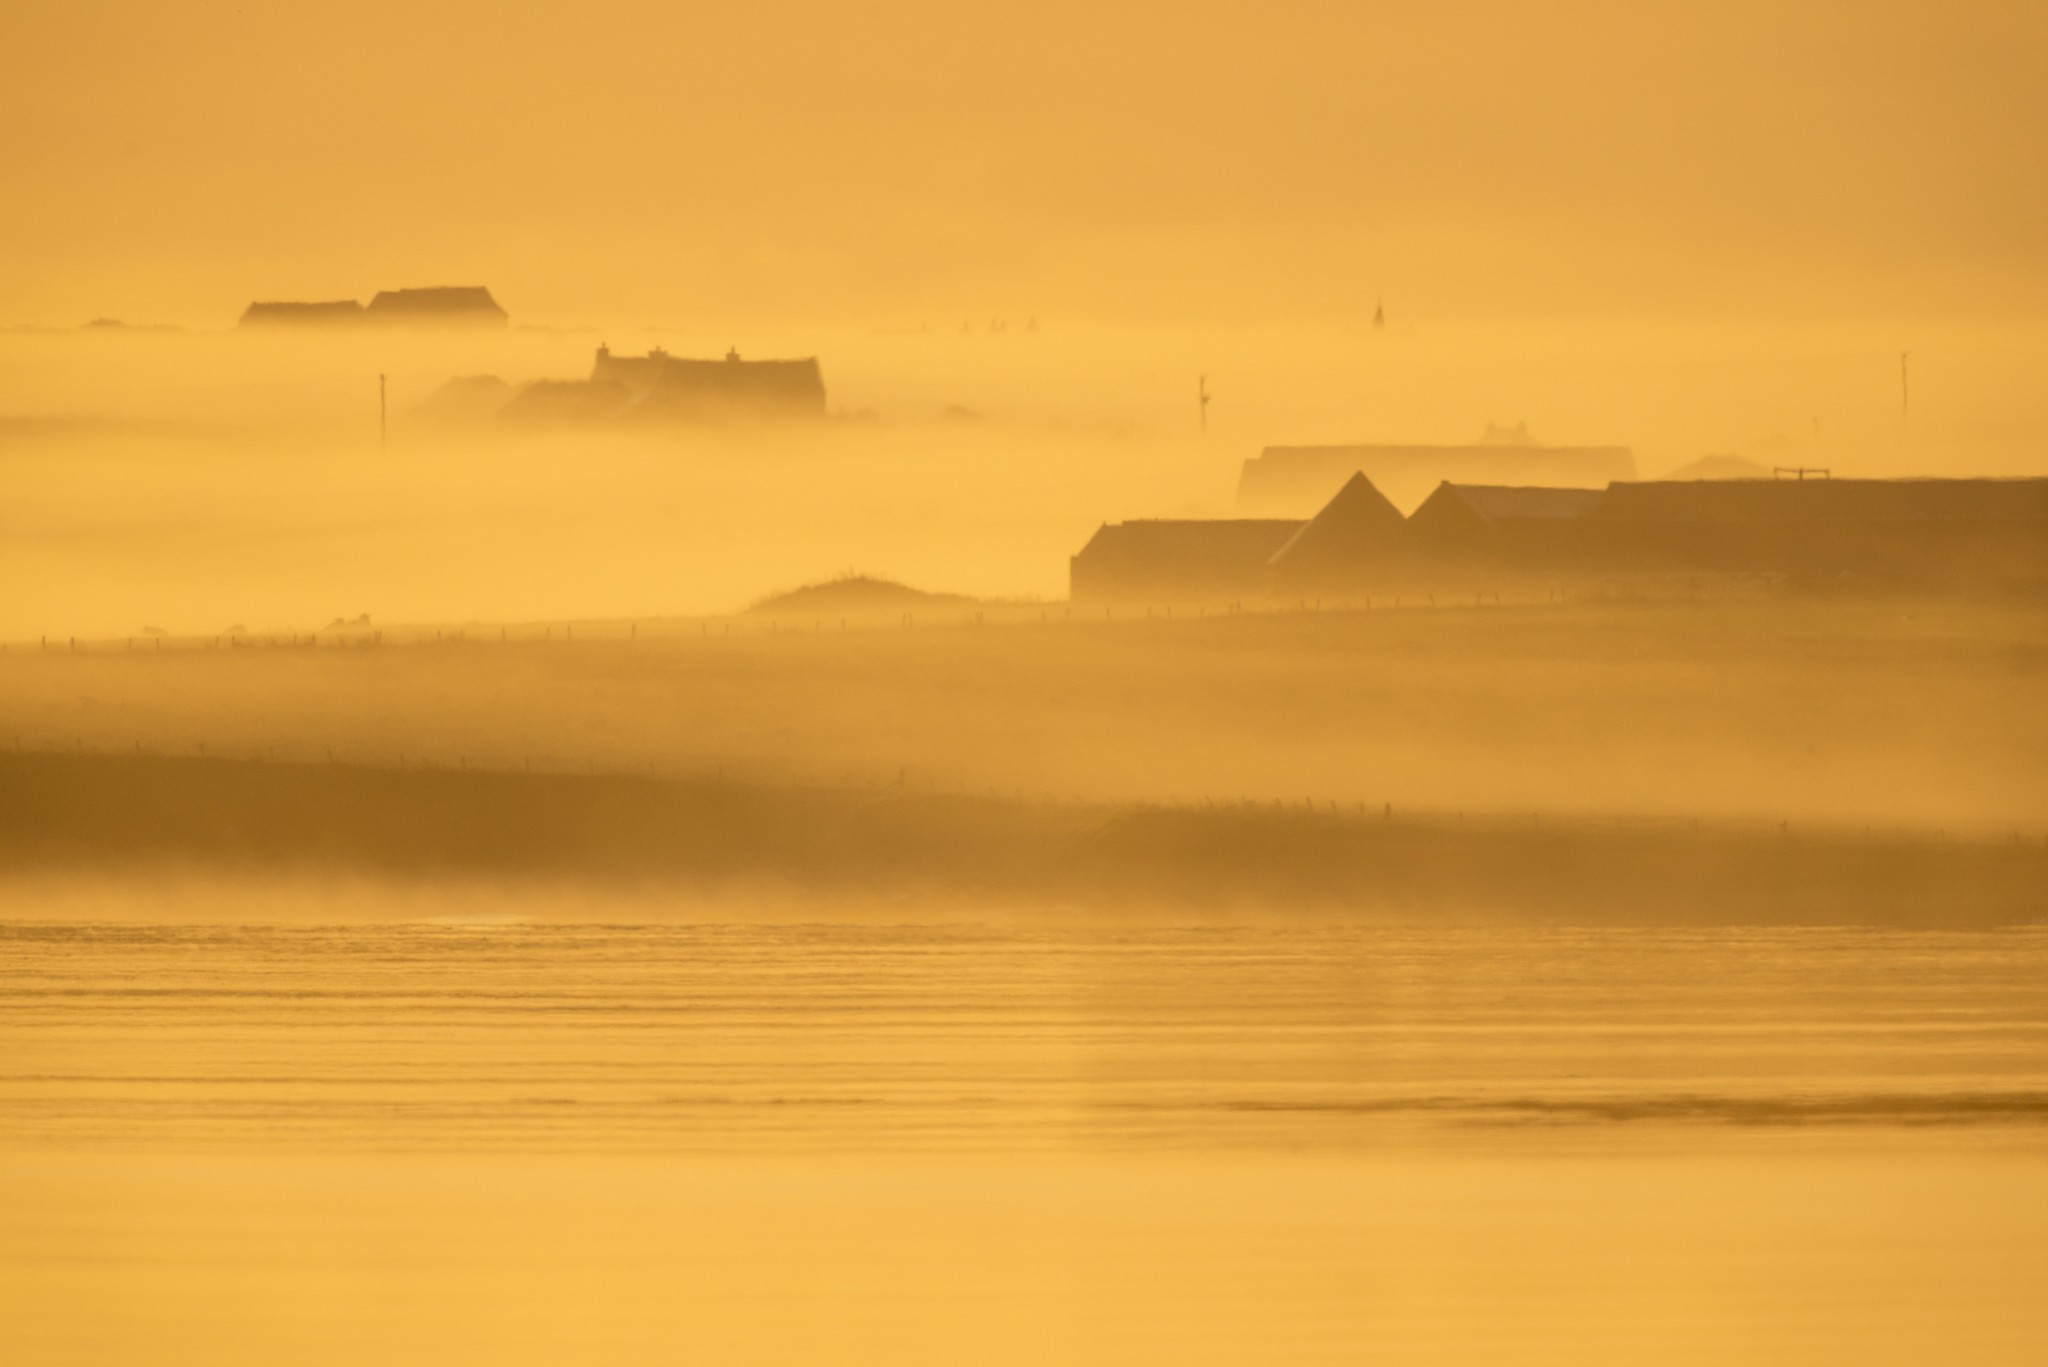 Misty morning in Orkney - image by Raymond Besant